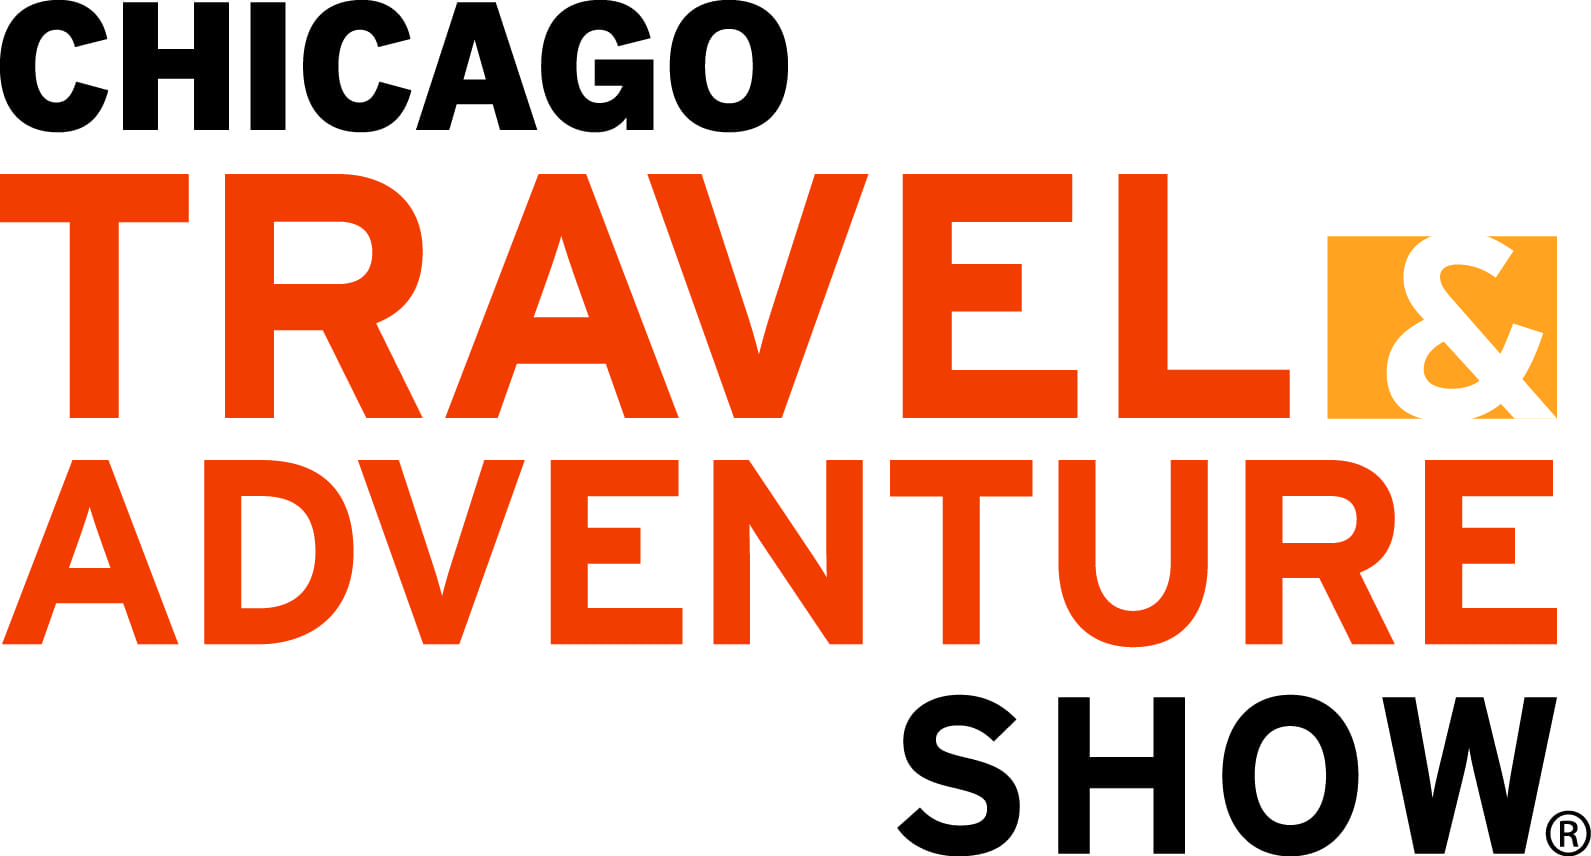 1/12/19 – Chicago Travel and Adventure Show